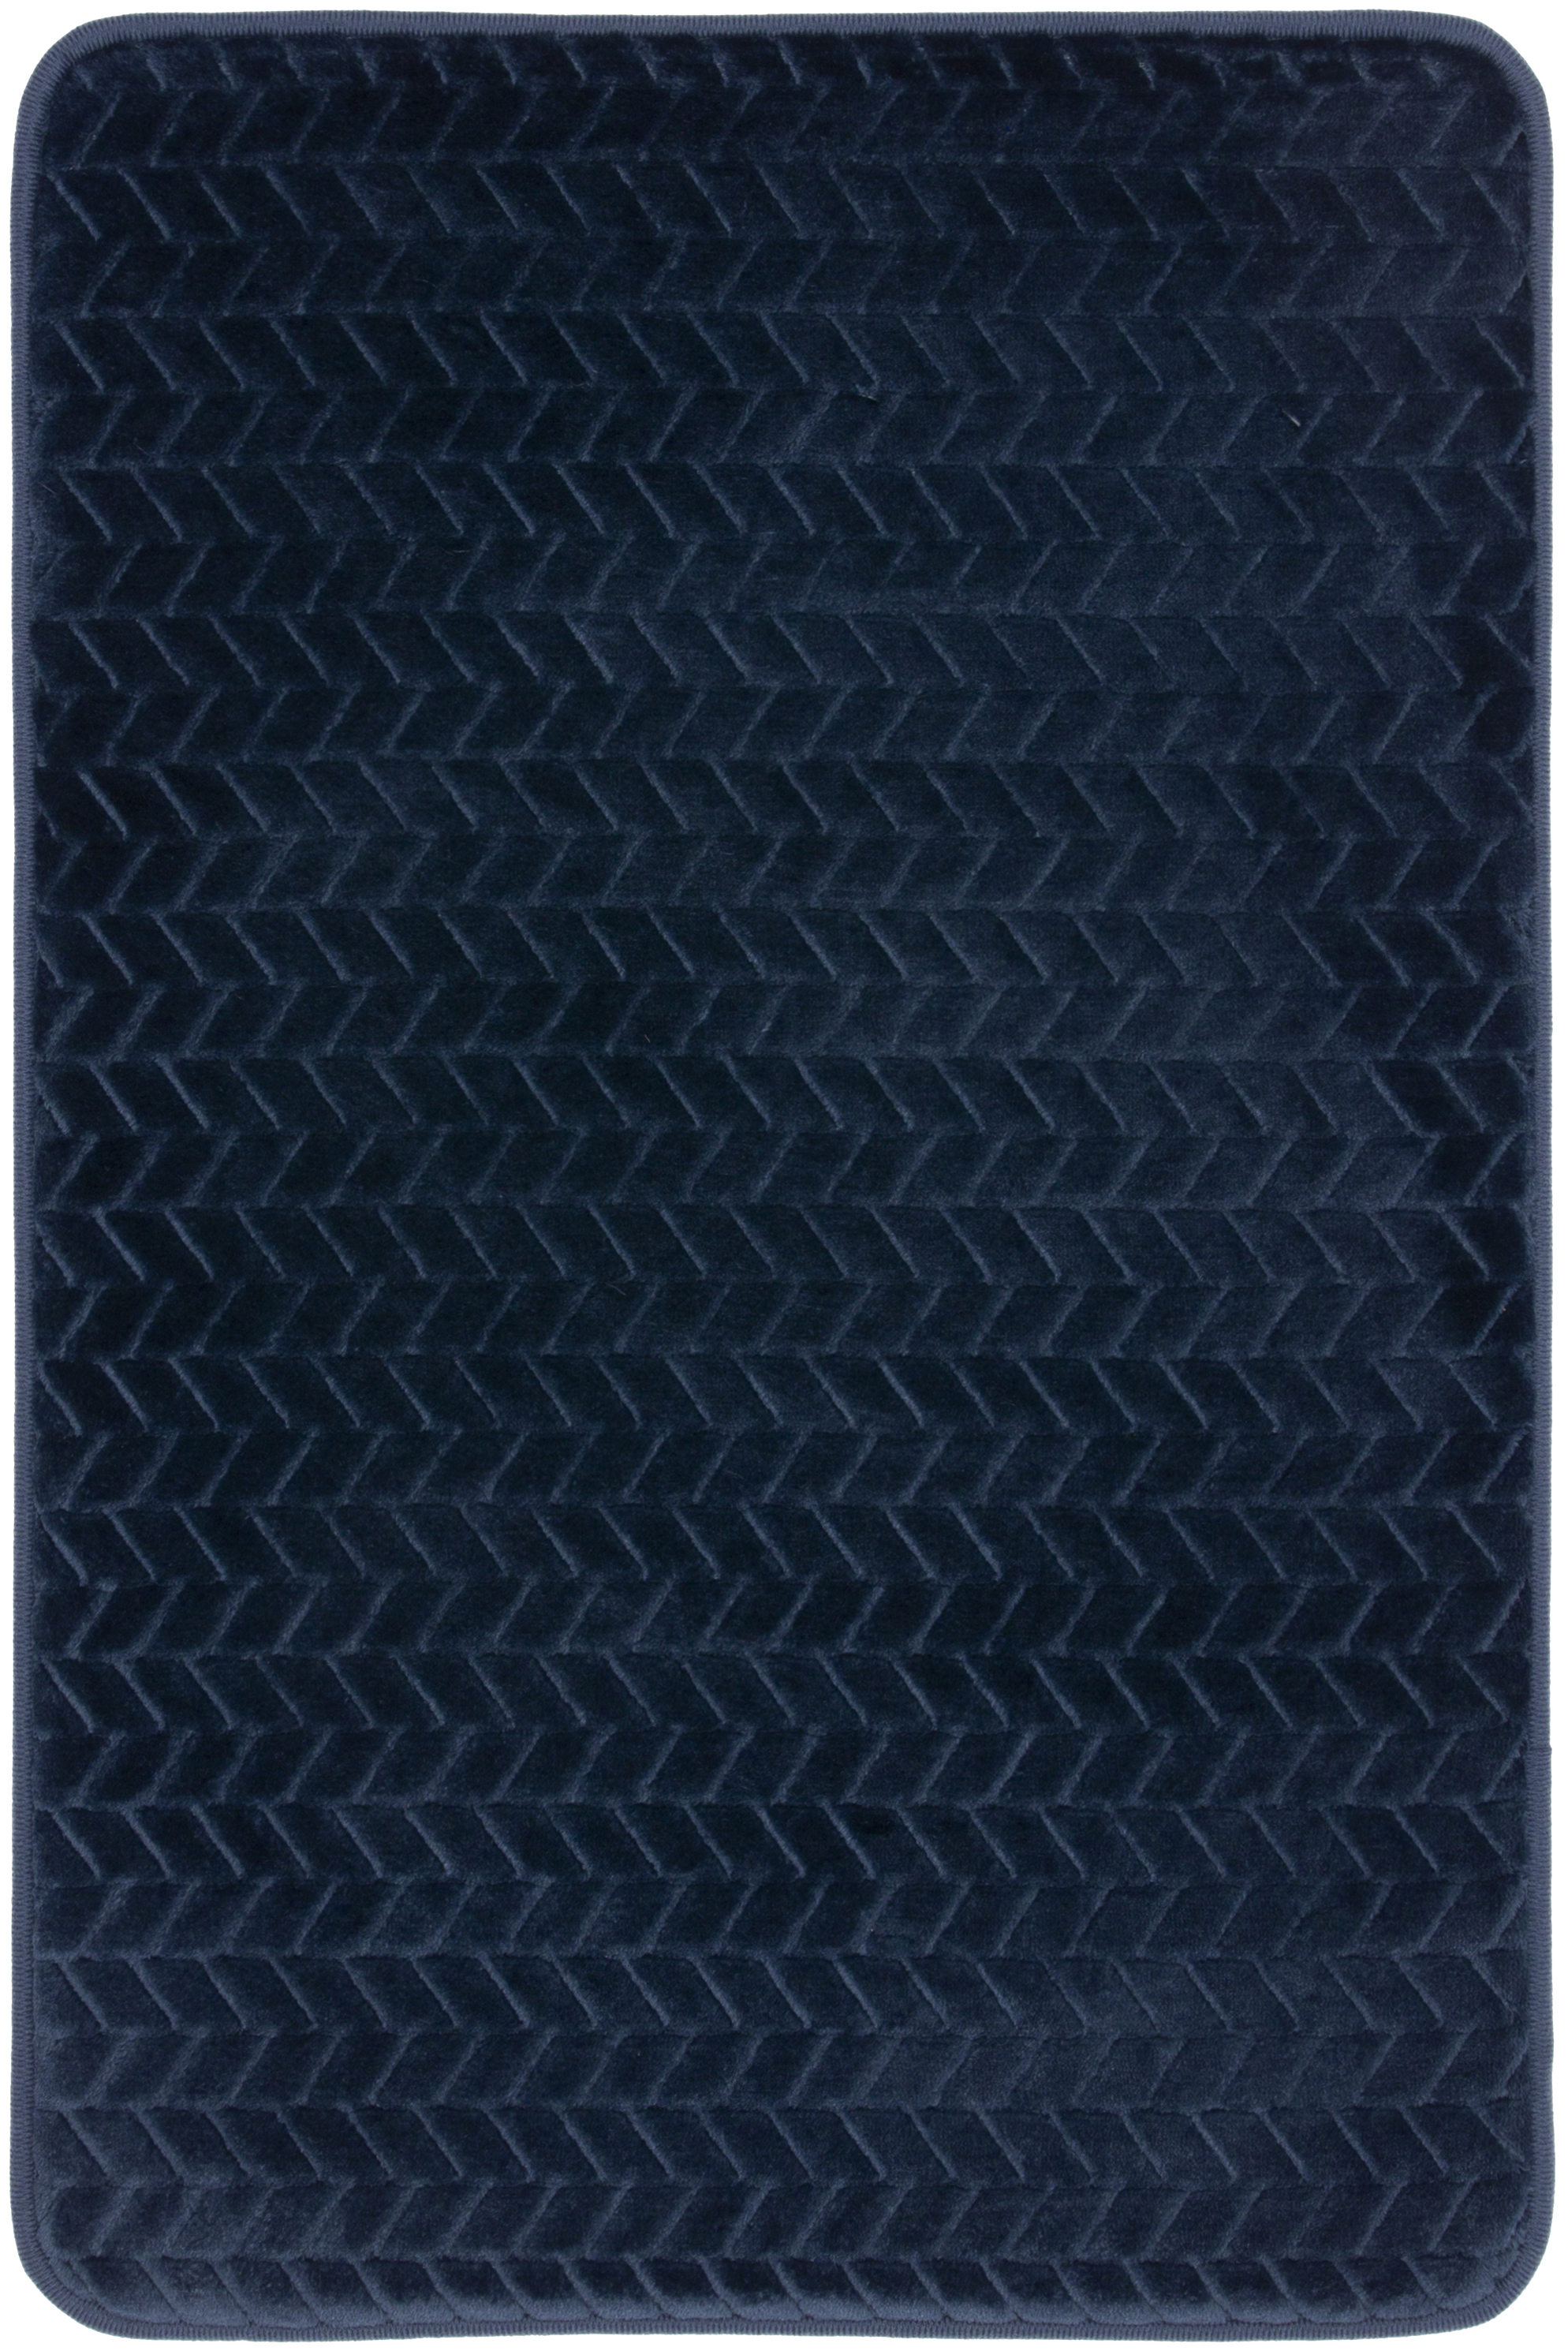 Mohawk Memory Foam Bath Rug In Navy 18 X 27 Brickseek